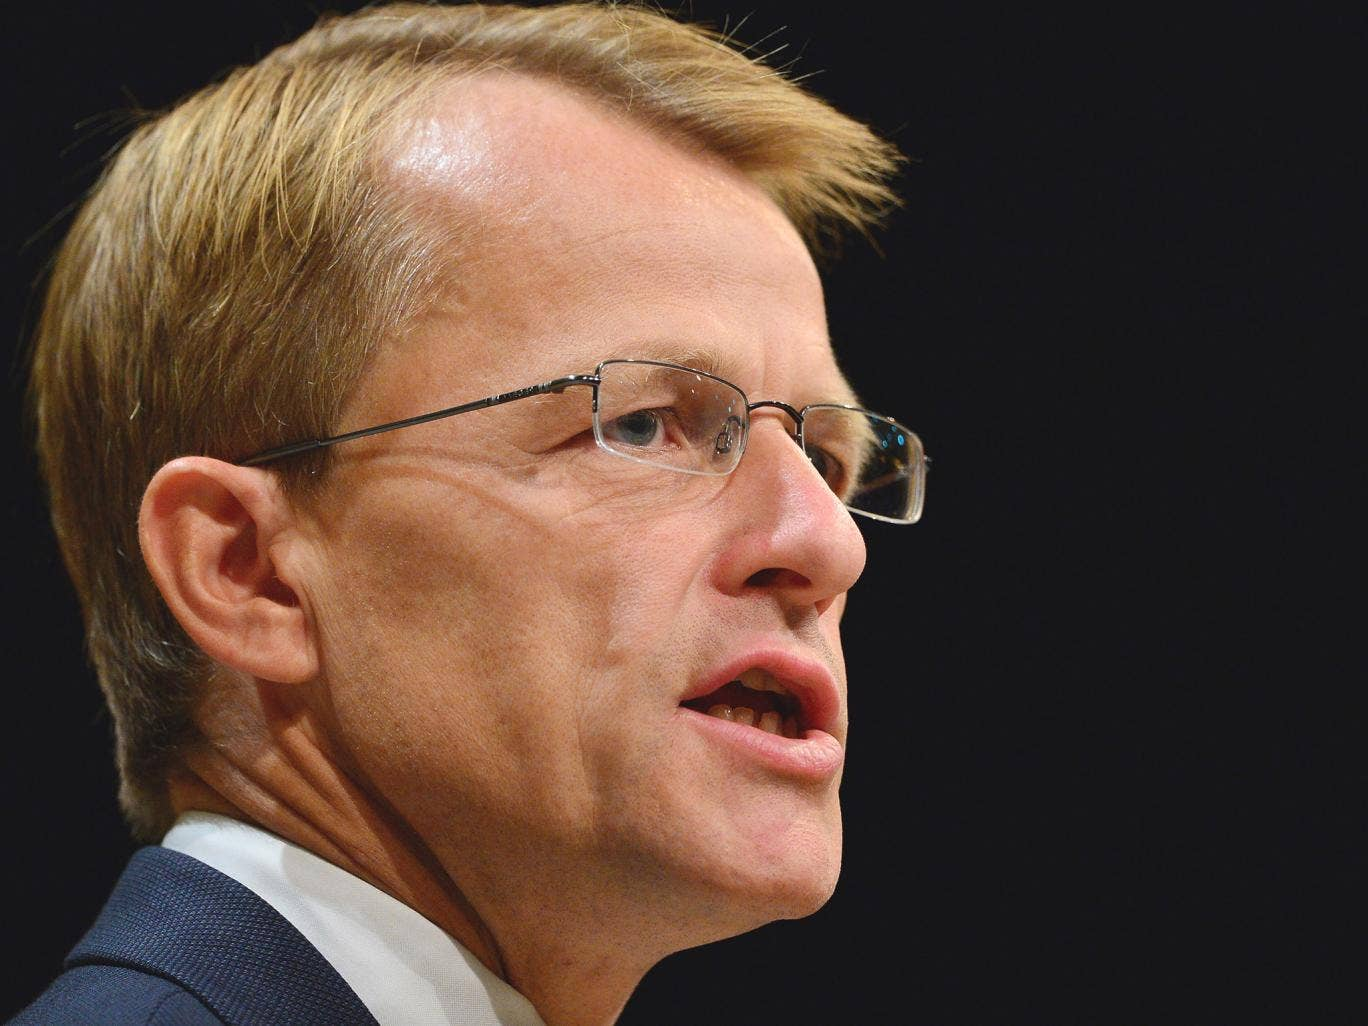 David Laws, Schools and Education Minister